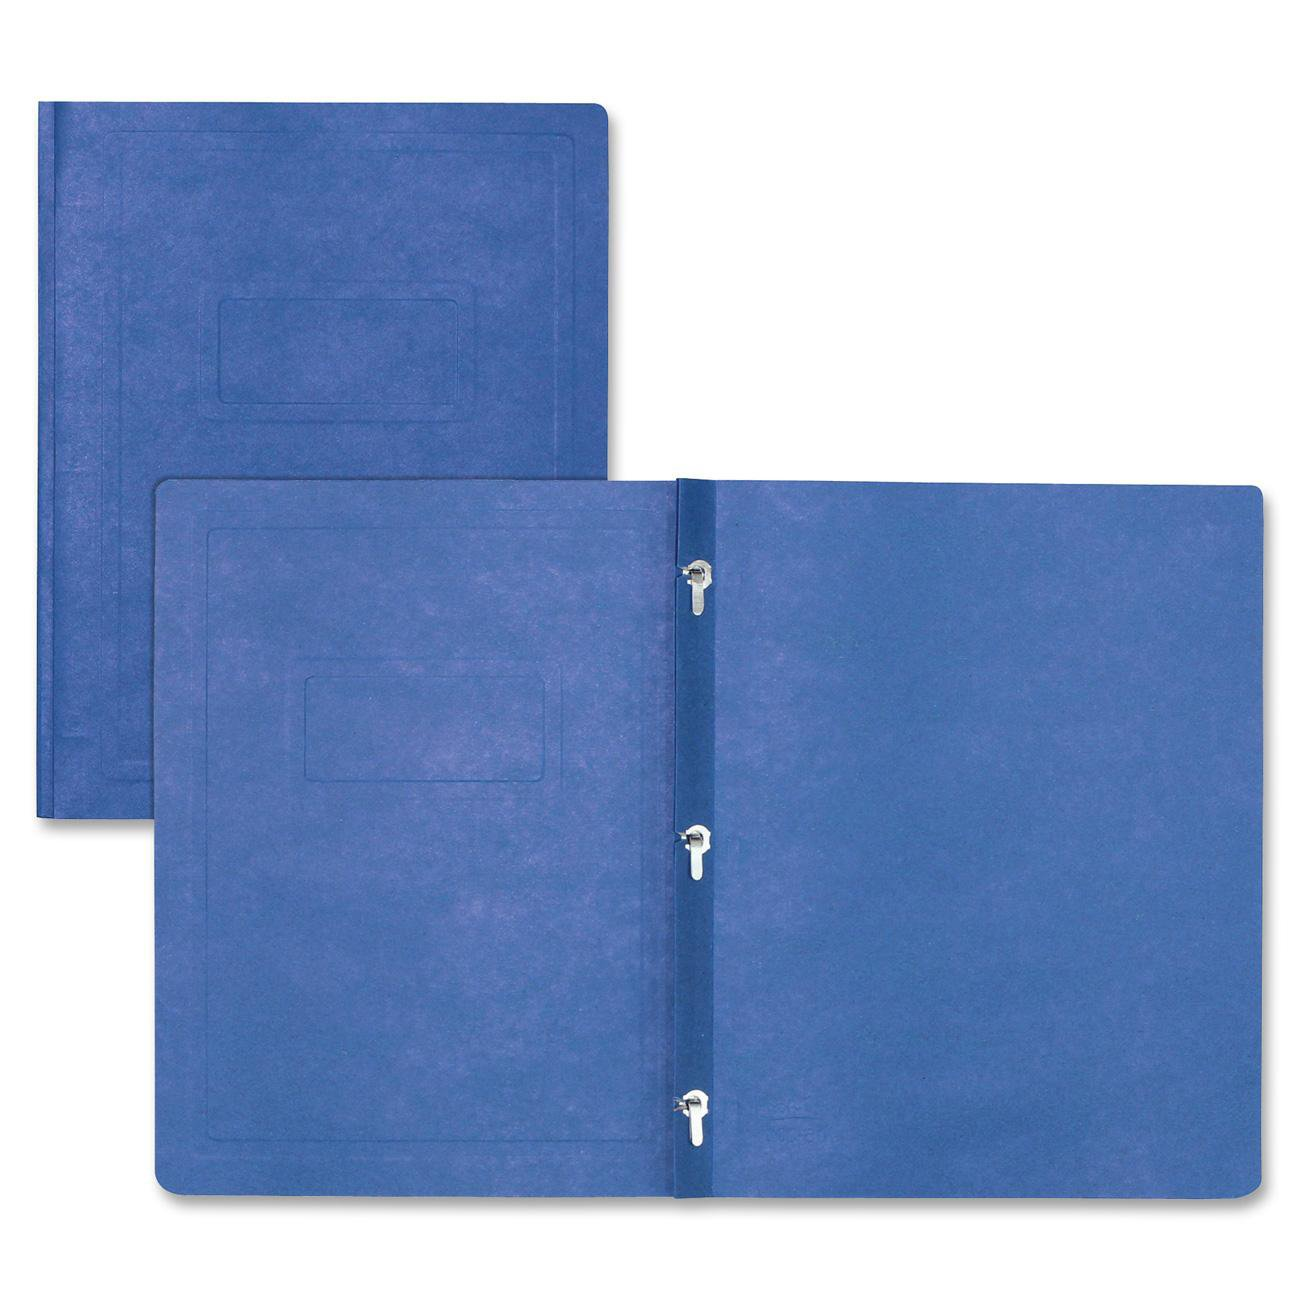 Hilroy Enviro Plus 100% Recycled Blue Report Cover - Each